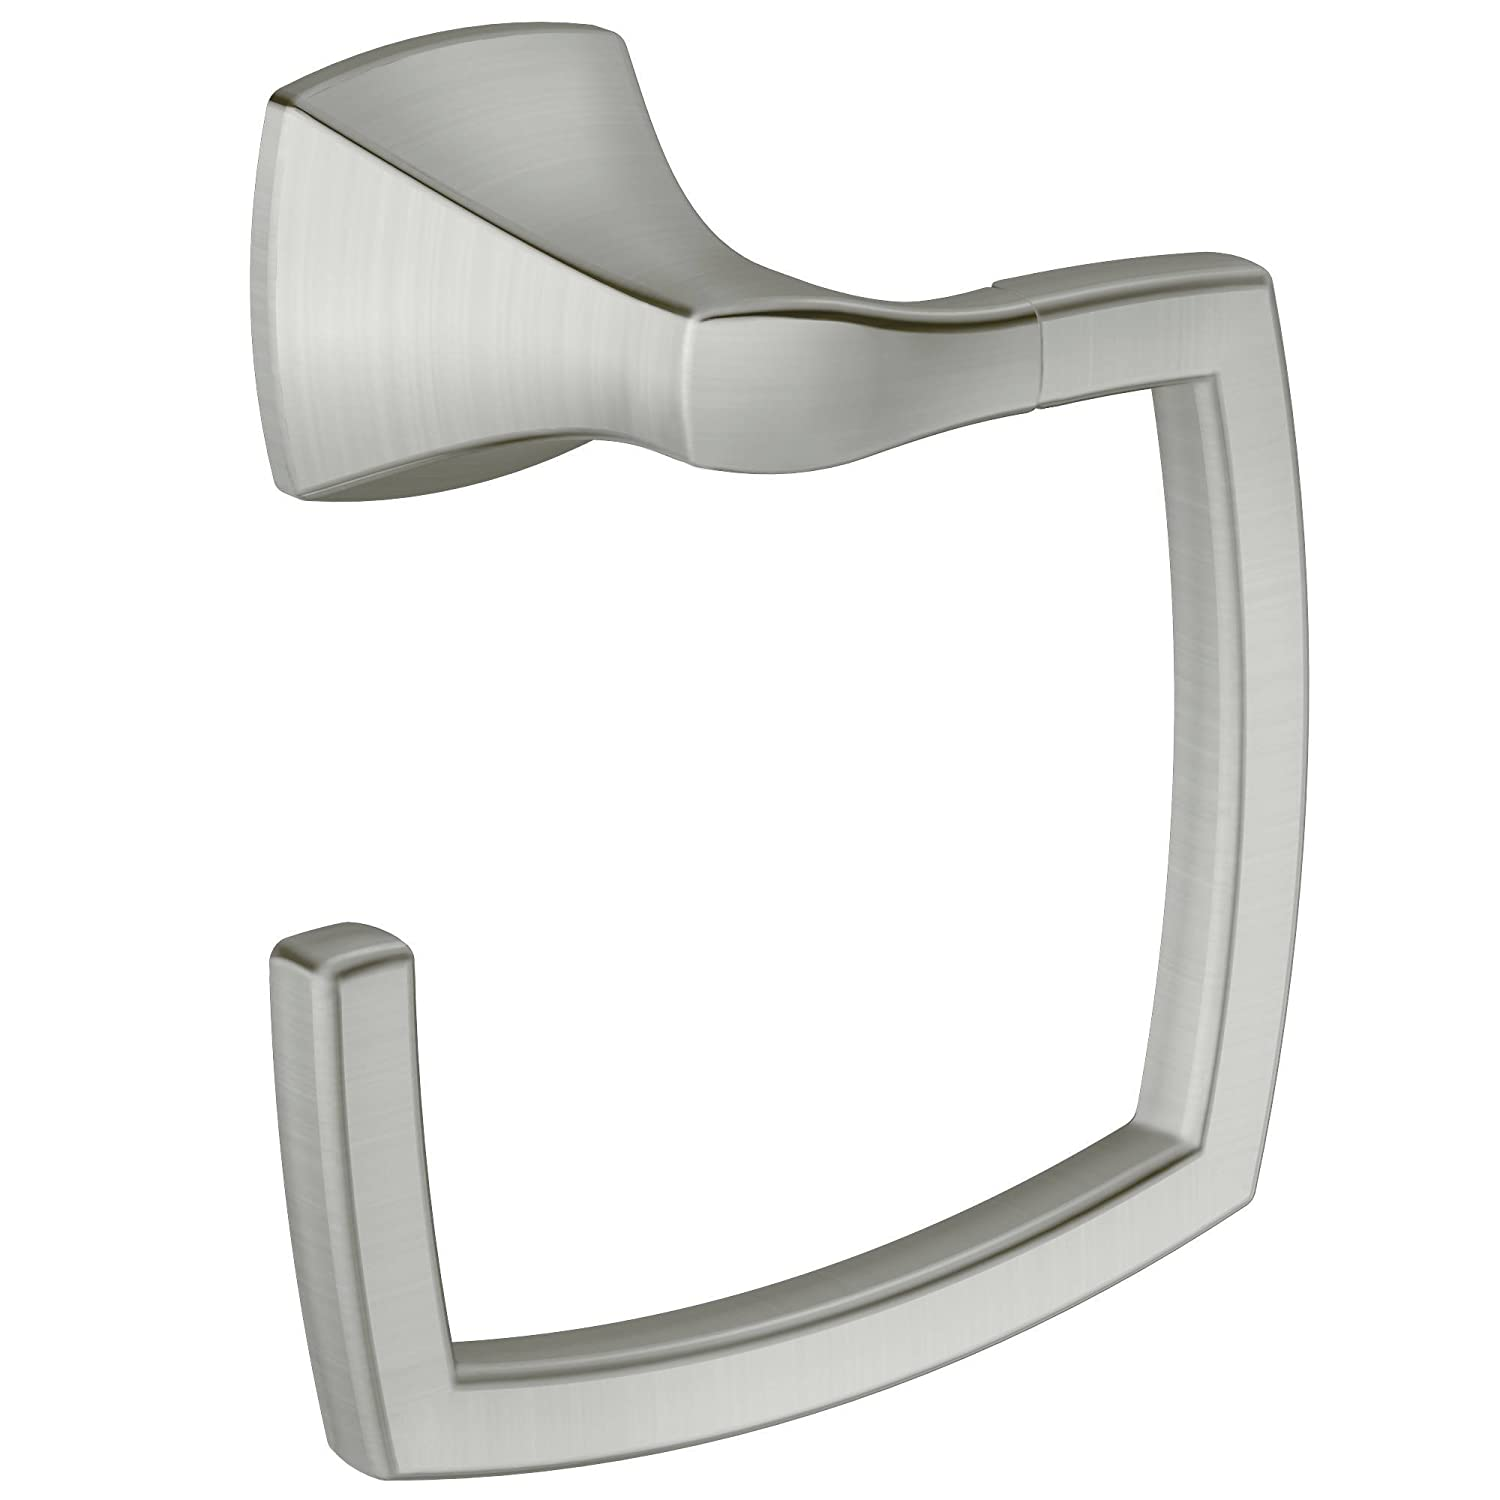 Moen YB5186BN Voss Bathroom Towel Ring, Brushed Nickel   Moen Voss Brushed  Nickel   Amazon.com